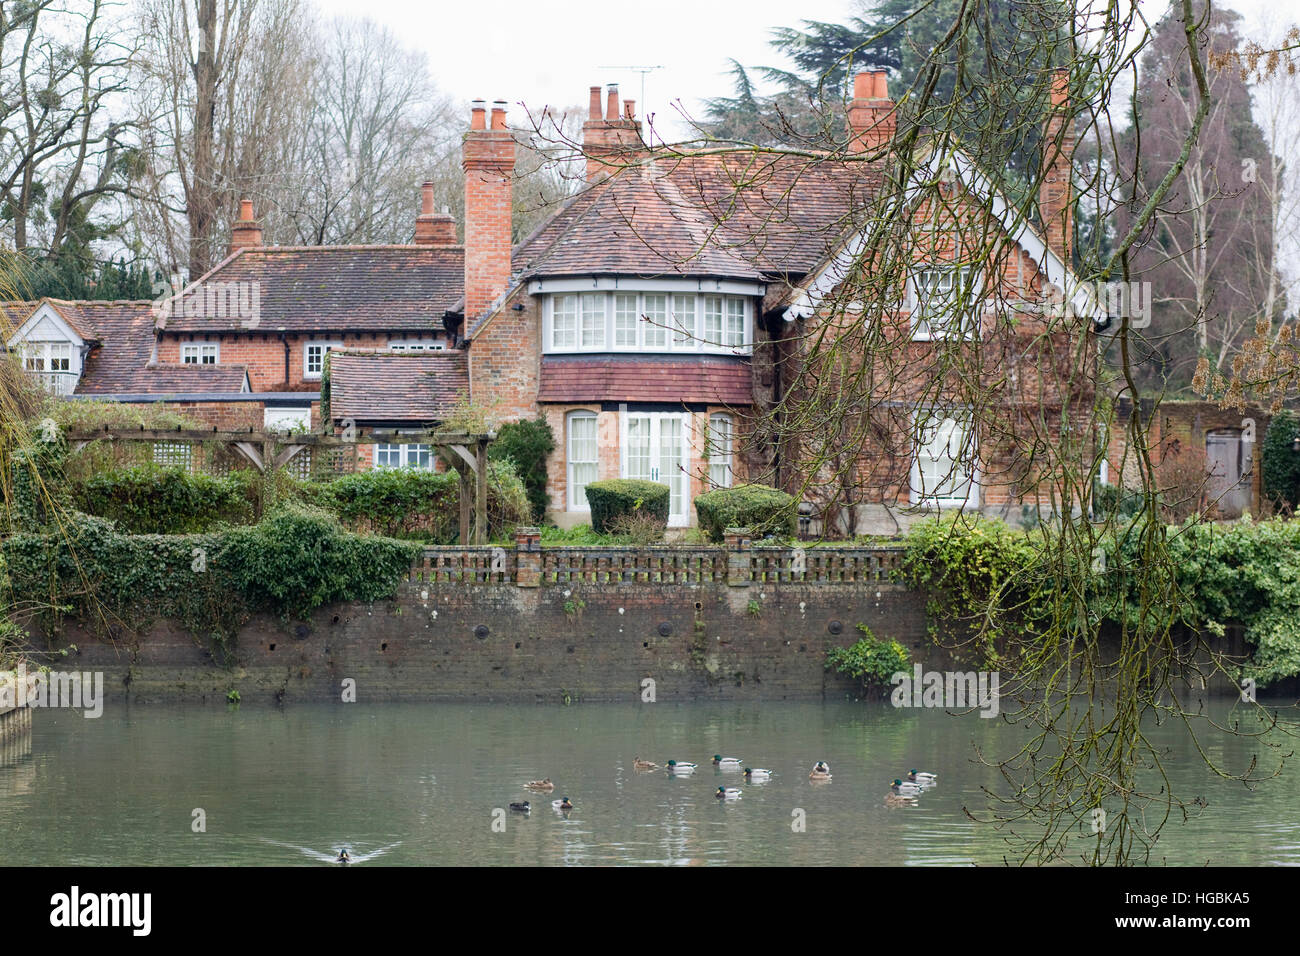 Tributes To The Late George Michael At His Home In Goring On Thames Stock Photo Alamy,Vital Proteins Collagen Costco